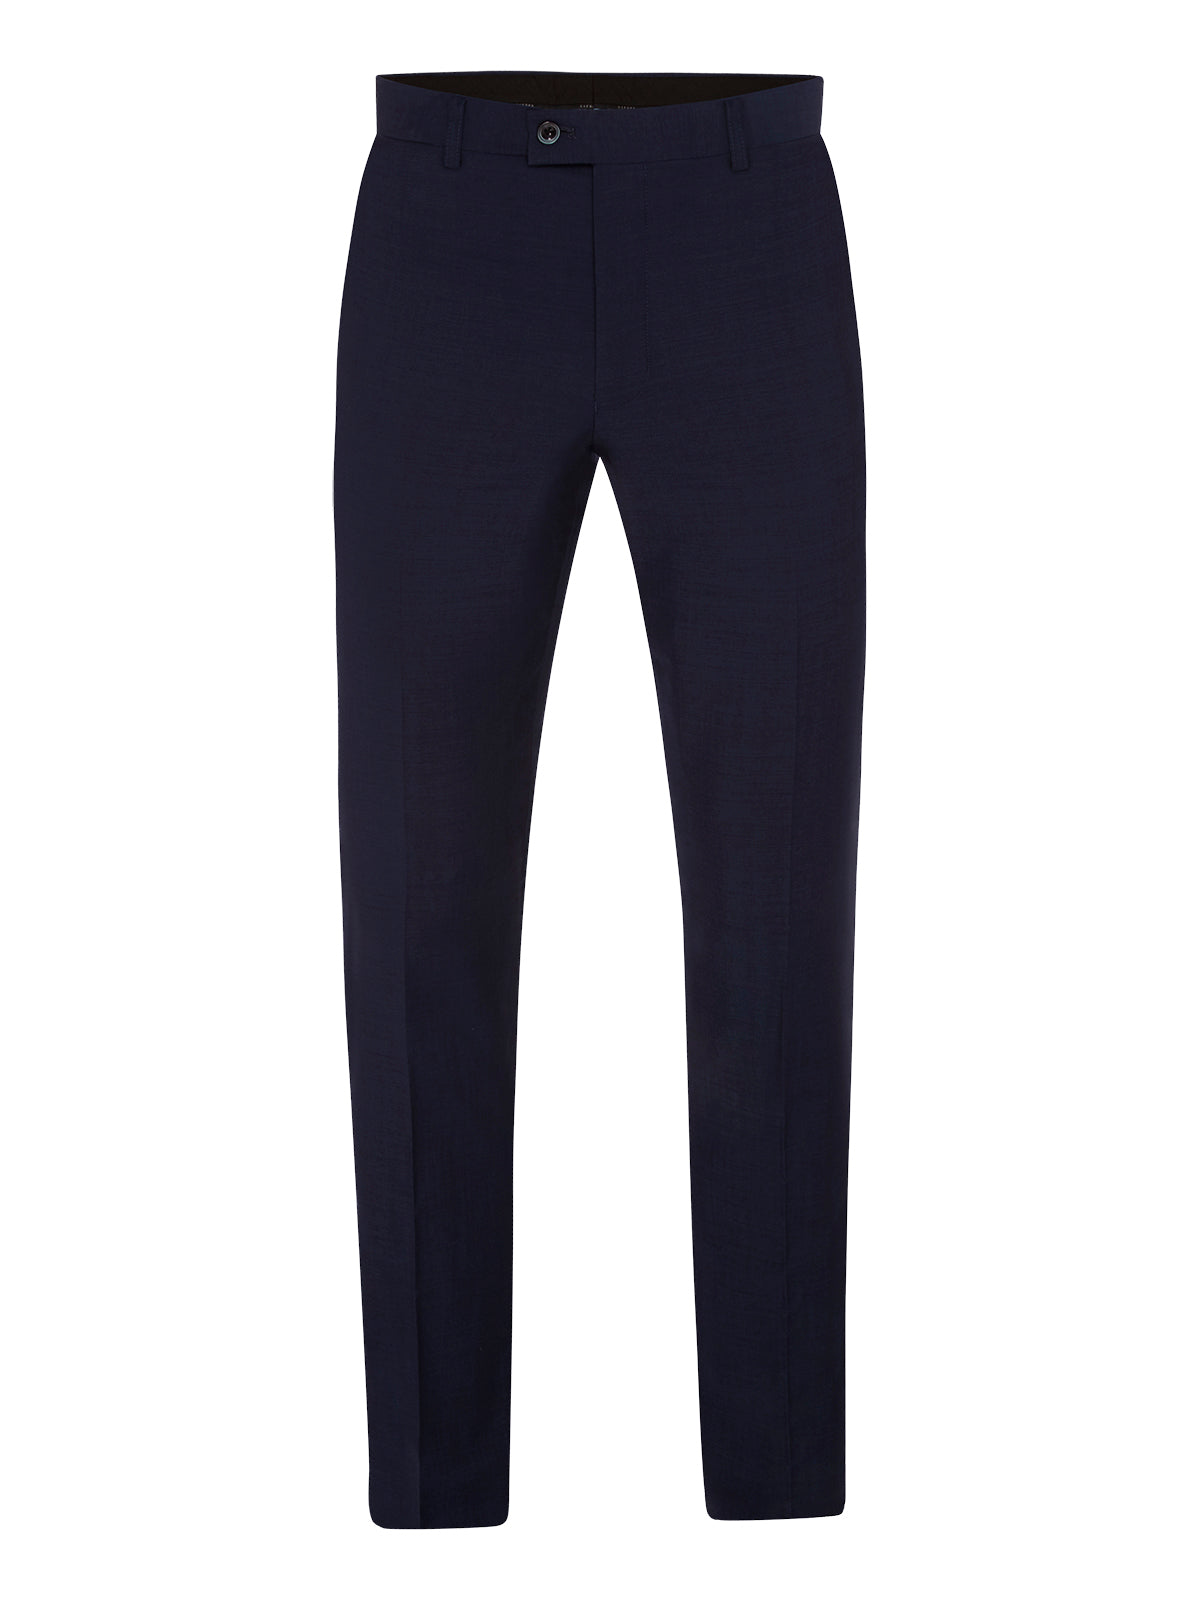 NEW HOPKINS SUIT TROUSERS NVY